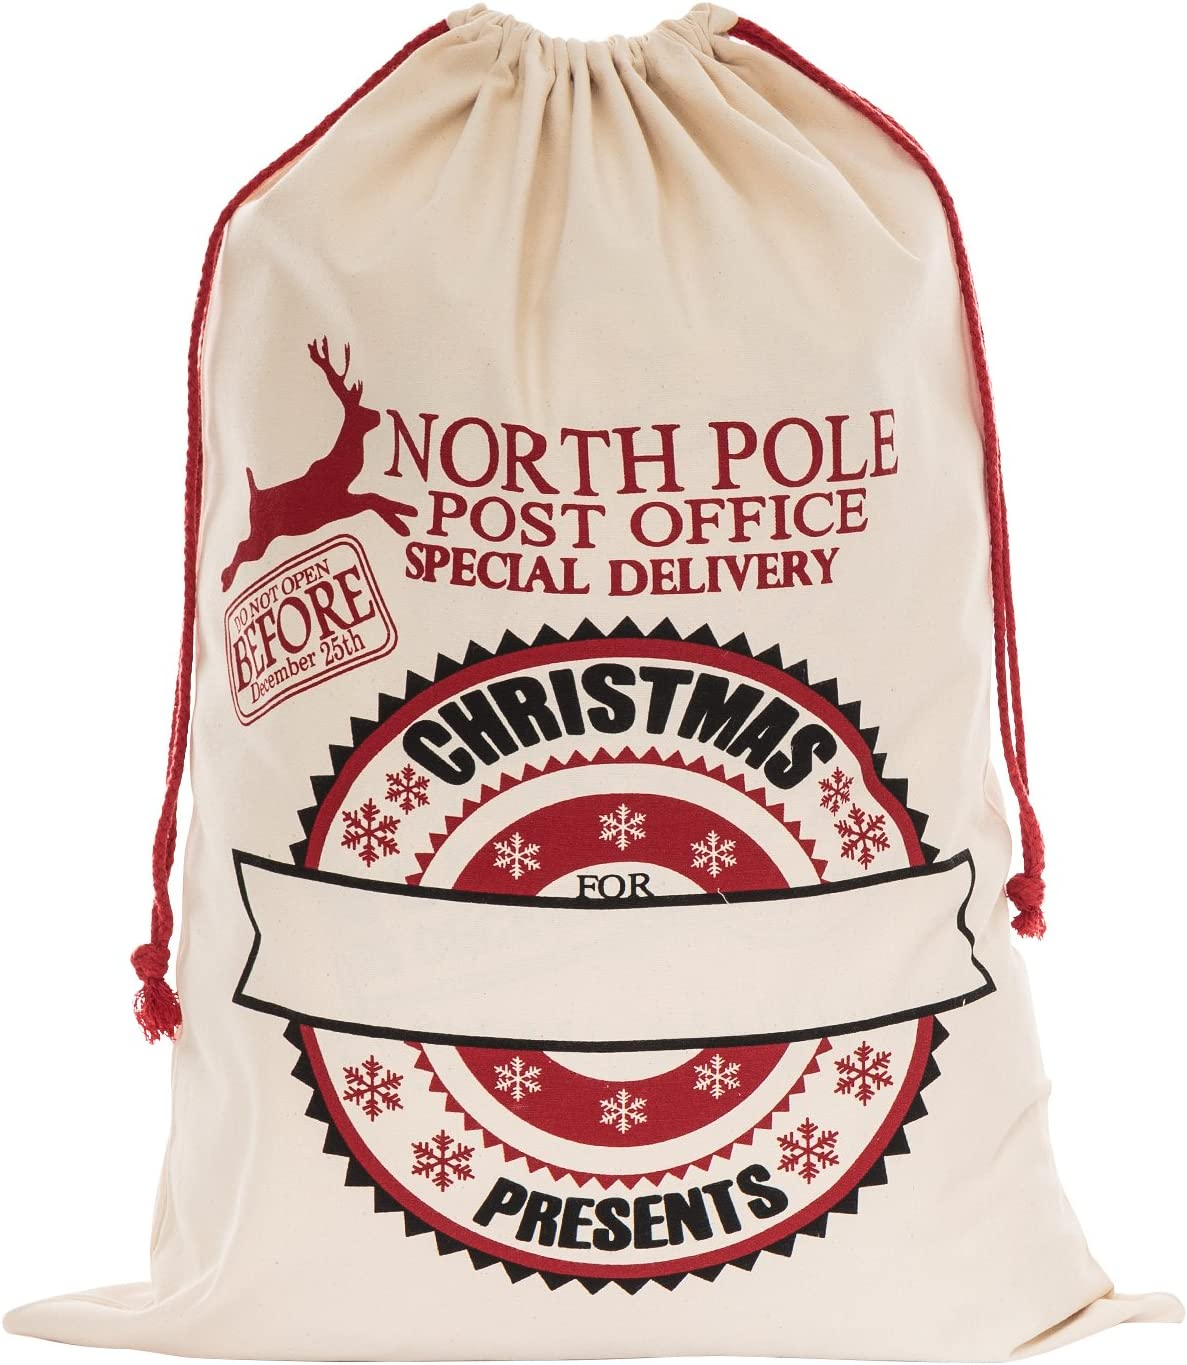 Christmas Gift Bag Drawstring Natural Cotton Sack Reindeer Design 5 Sizes Kids